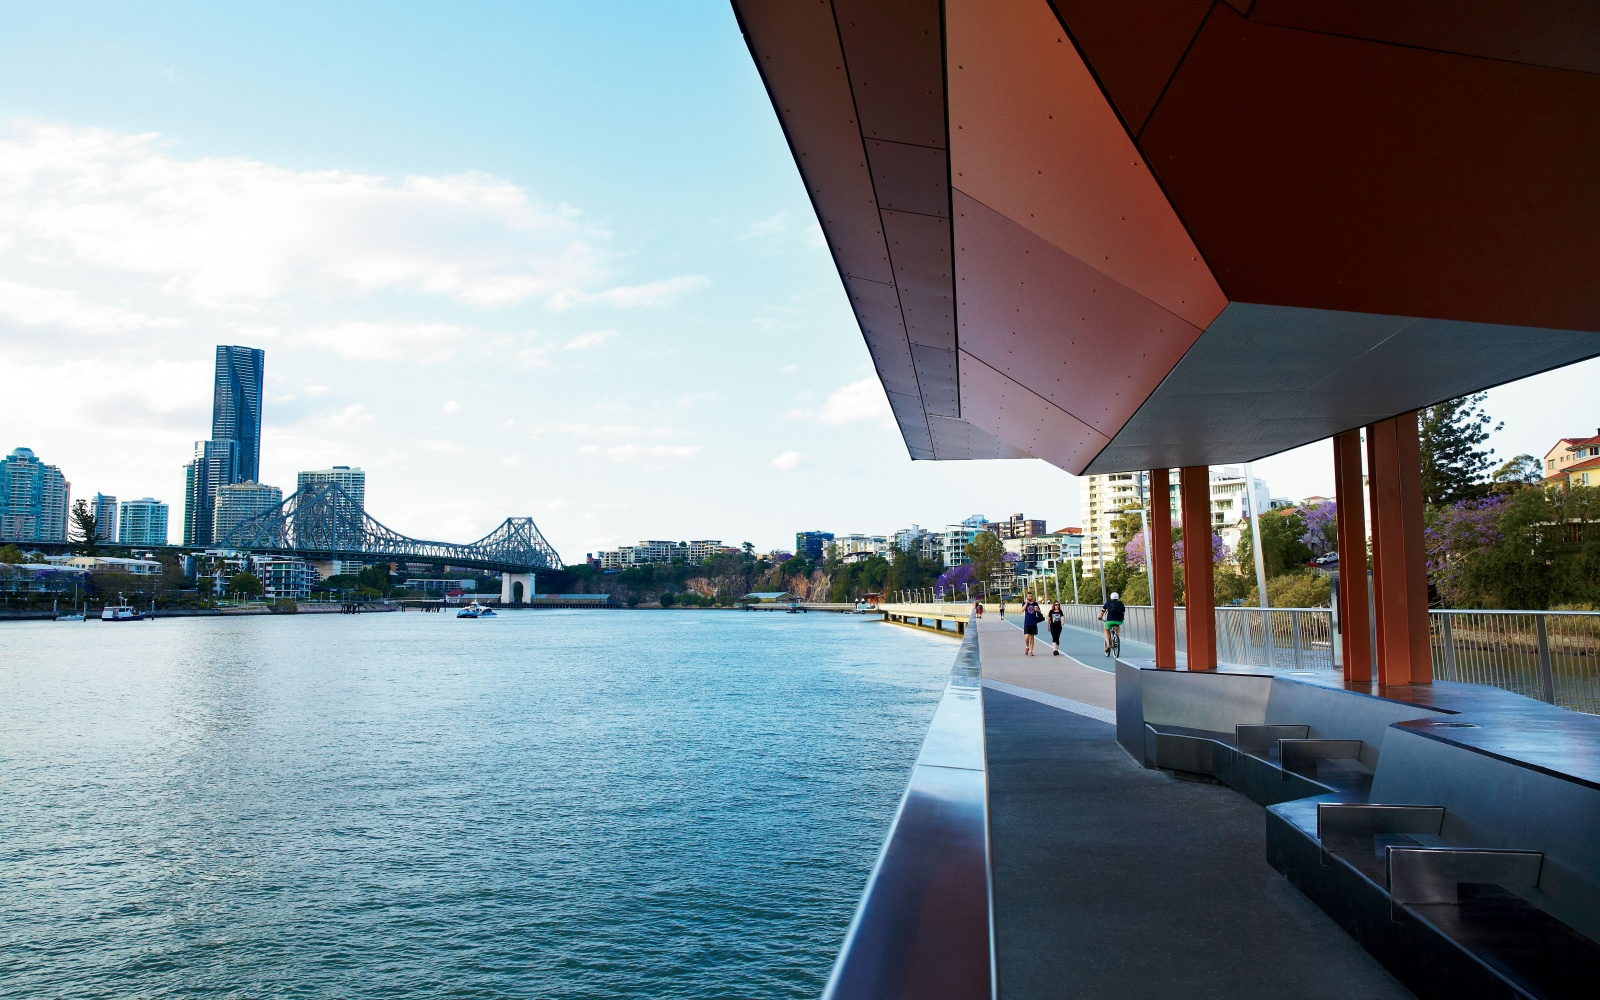 Why Australia's Brisbane Belongs on Any Avid Traveler's Bucket List